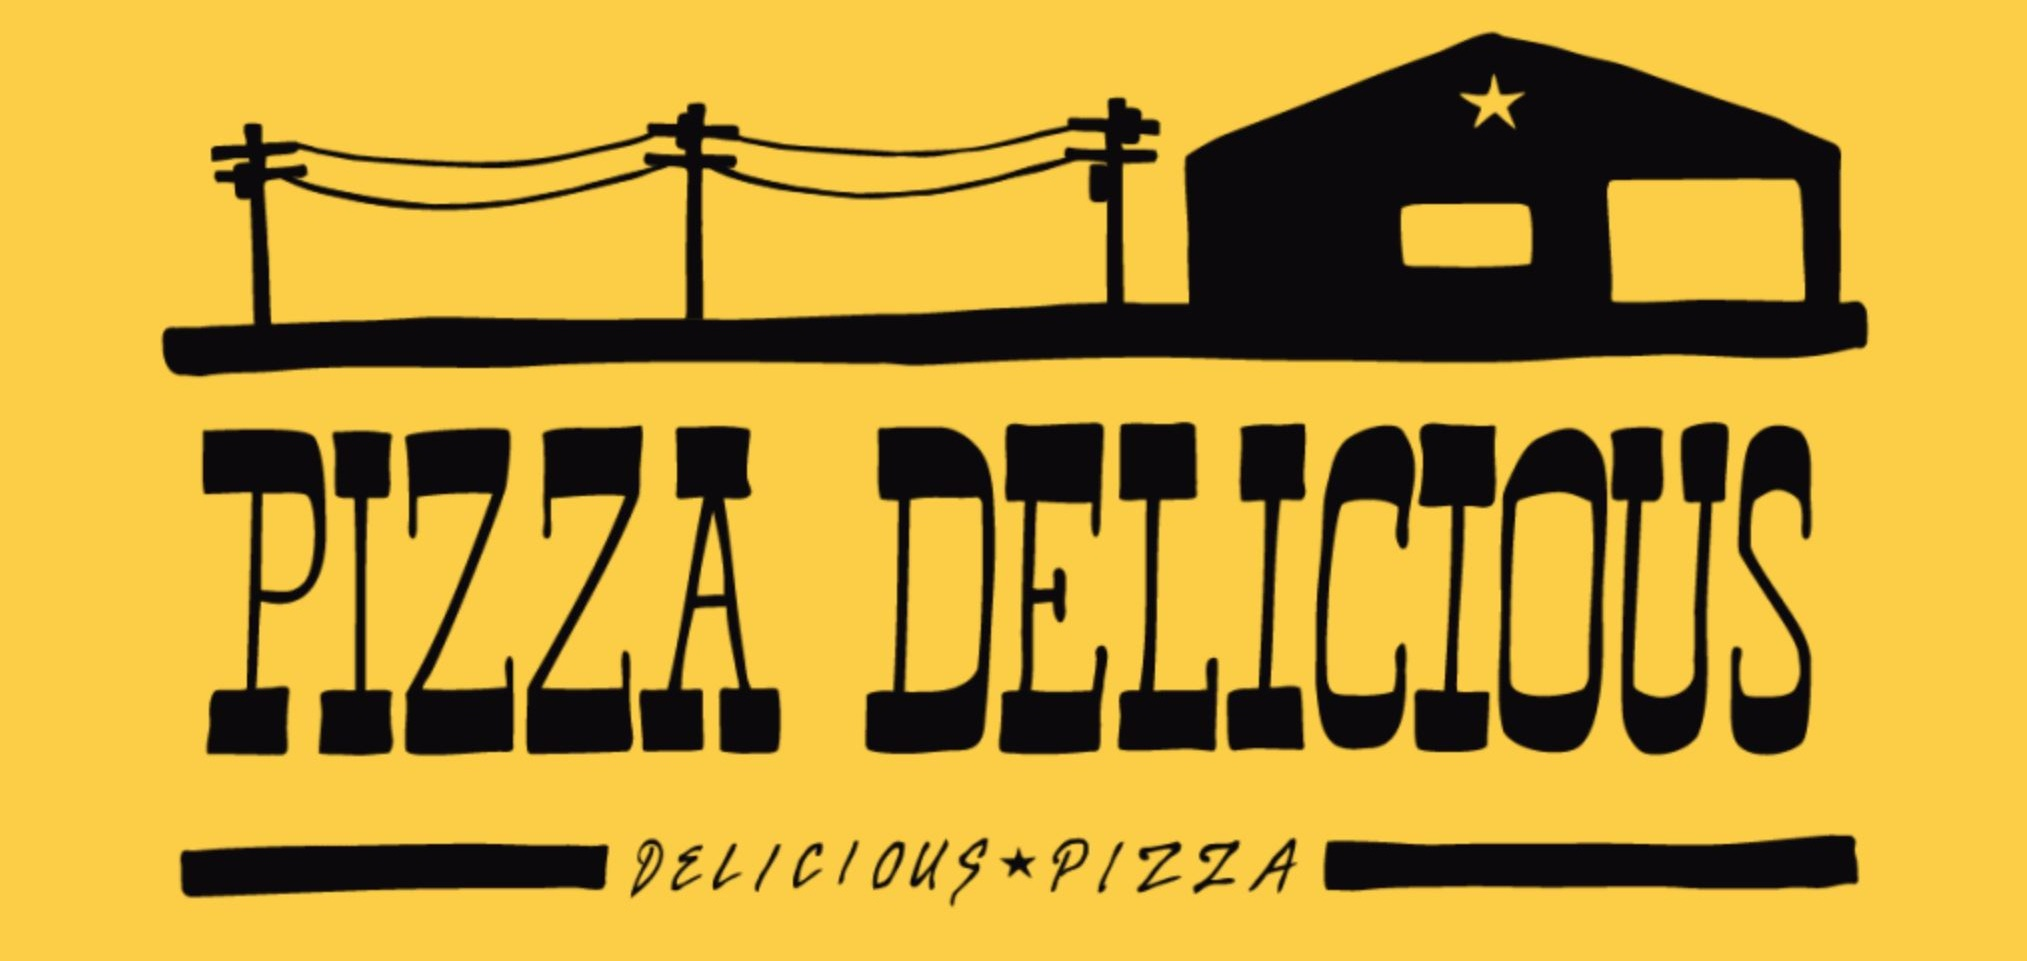 Thank you Pizza Delicious for supporting Art Camp 504 and for providing our campers with a Pizza Party Lunch every Friday!